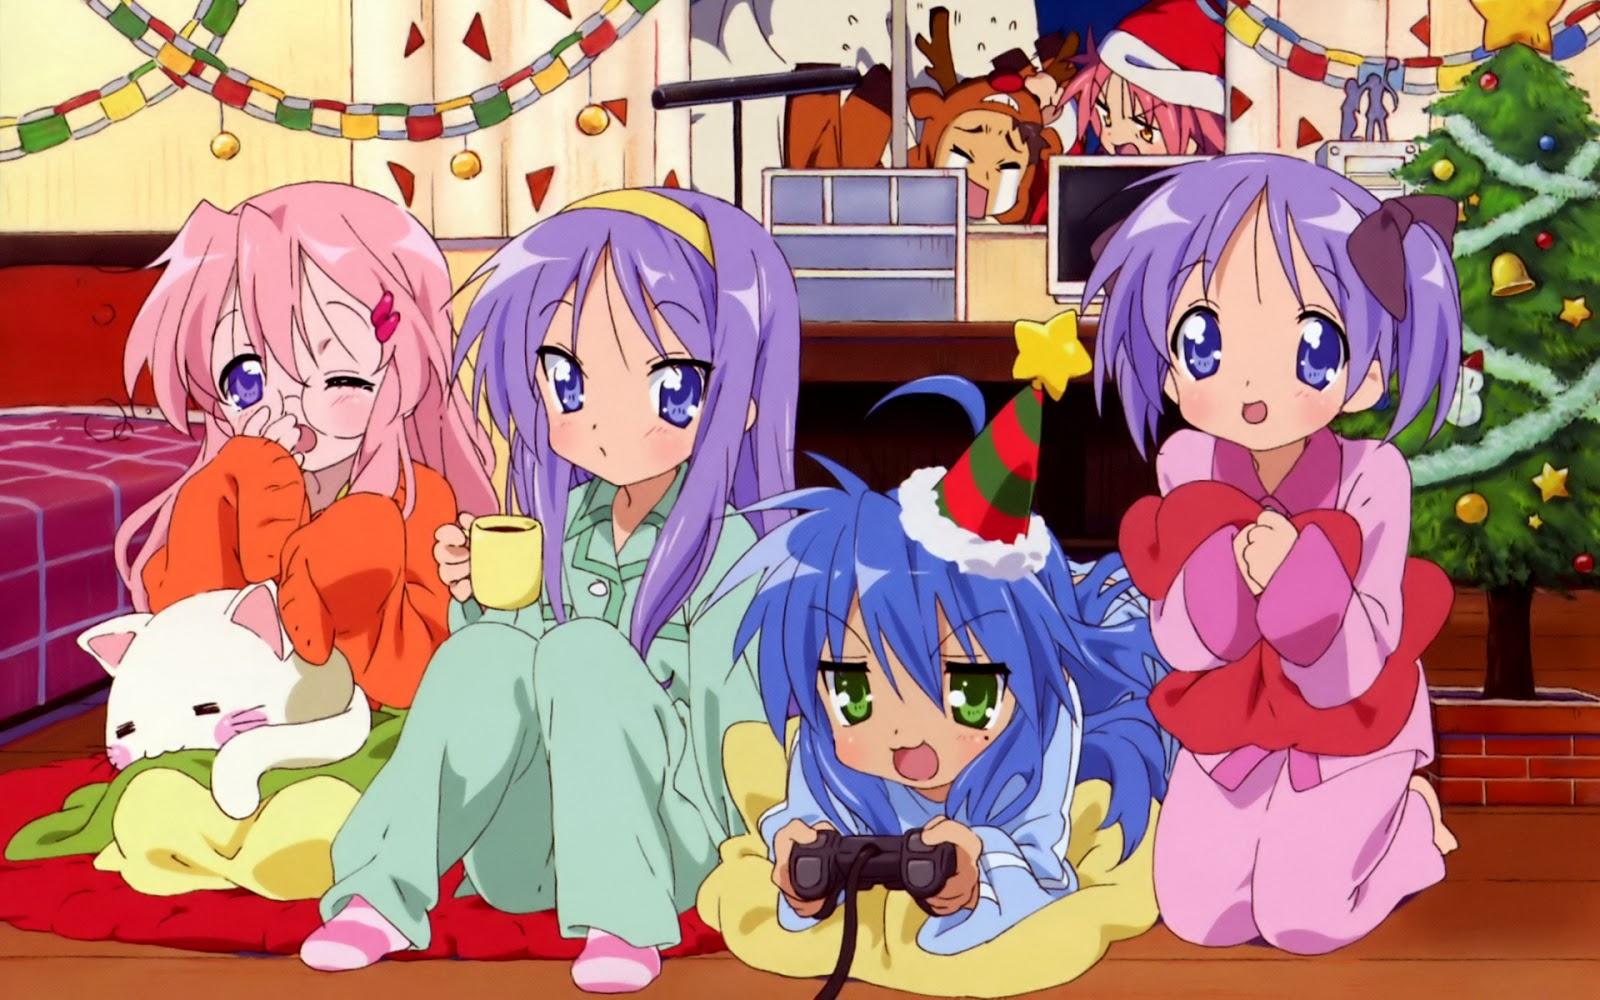 dare to be stupid!: rucky sta! or lucky star for you non weaboos.